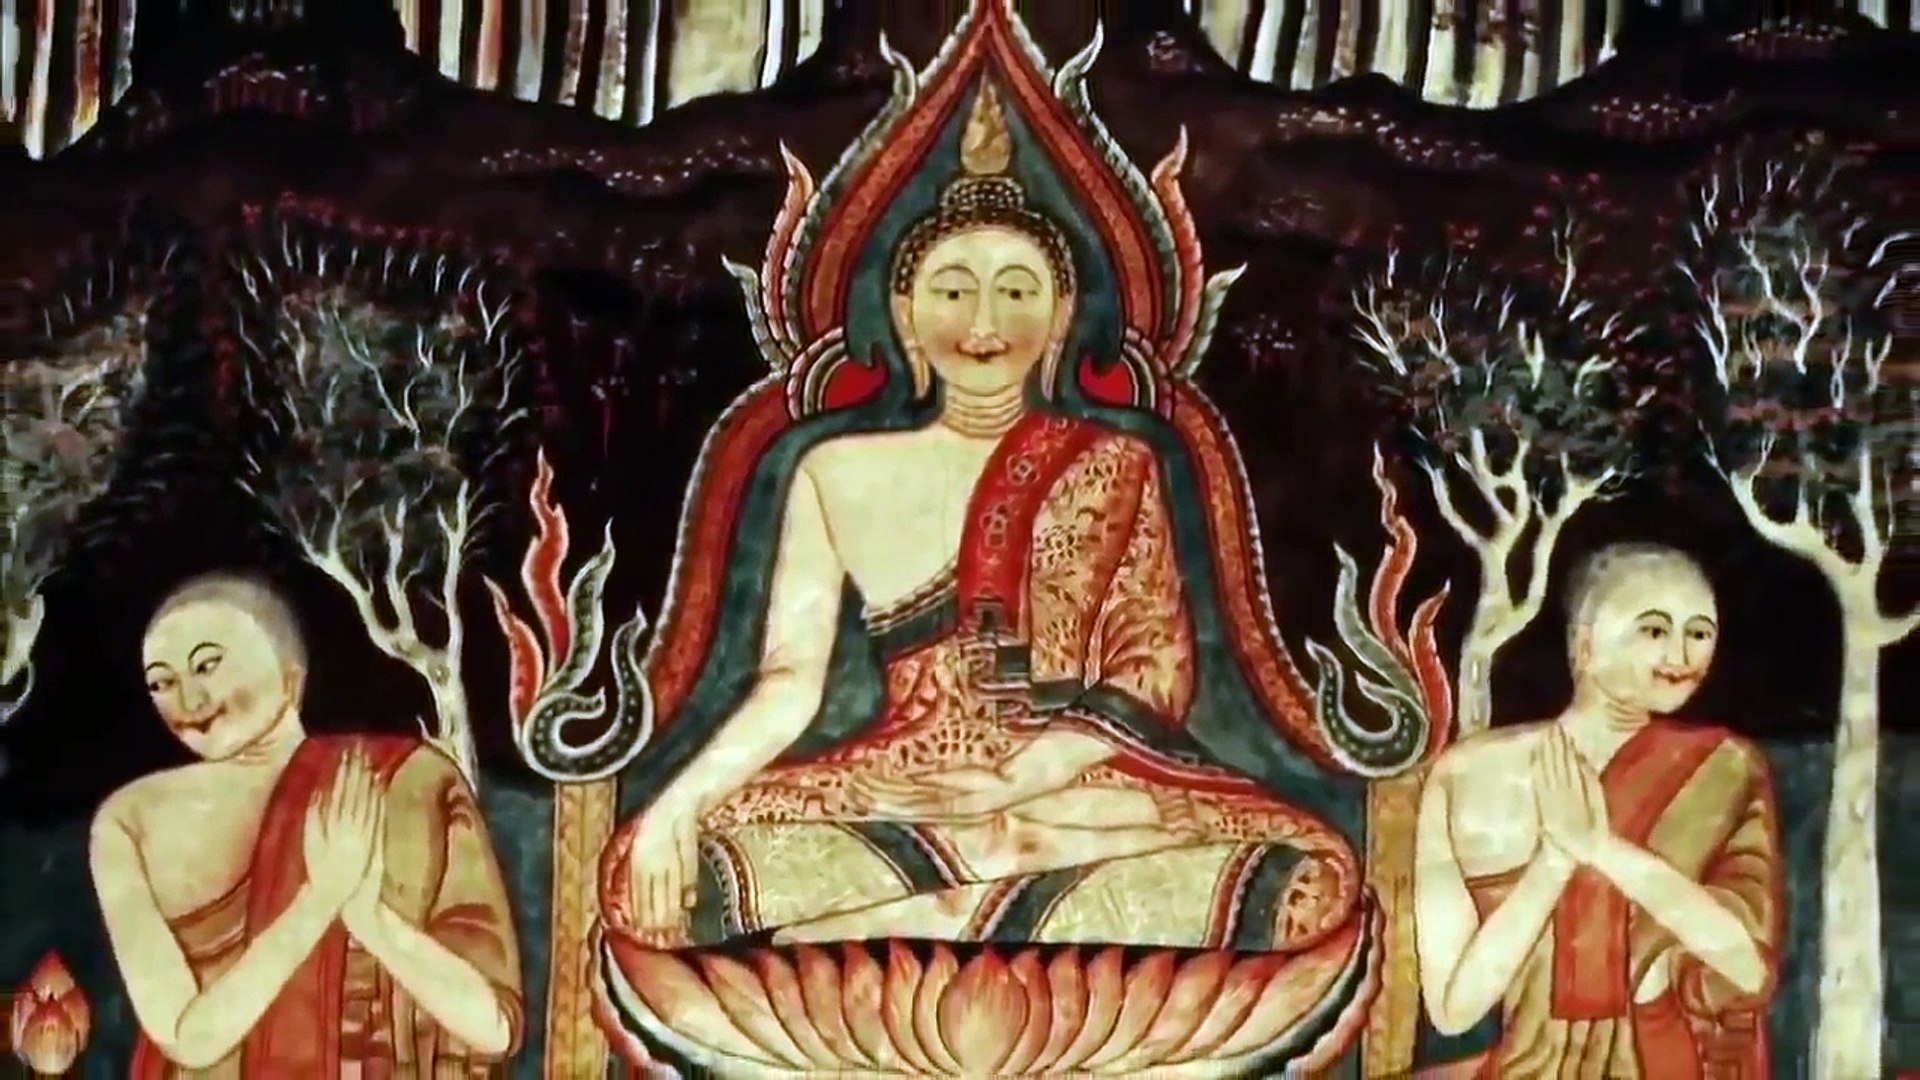 The Buddha A Documentary Story Of The Buddhas Life 2Hrs History Documentary - Full Documentary part